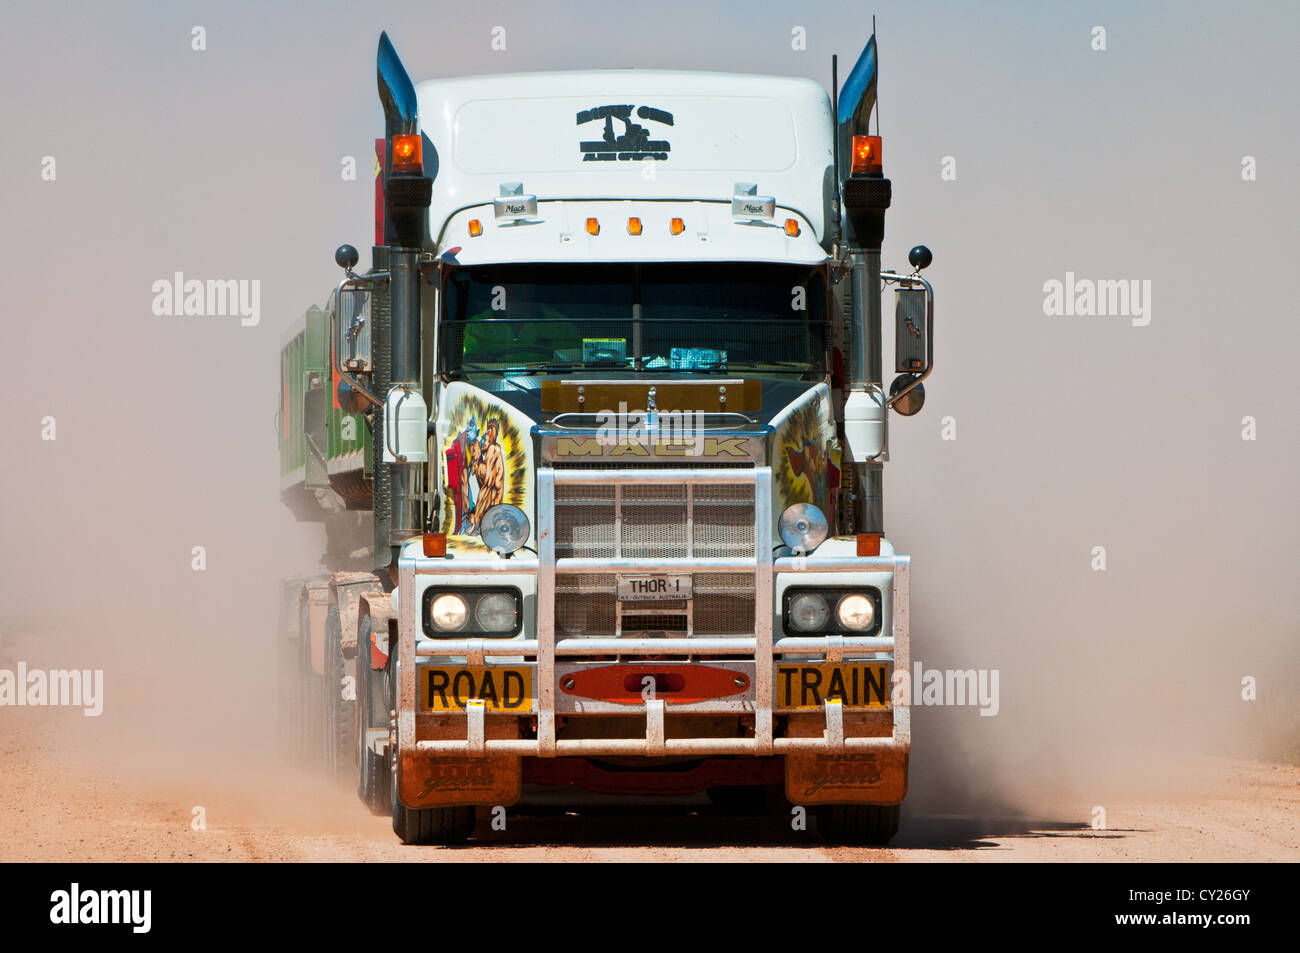 Road Train in a dust cloud on a desert track. - Stock Image